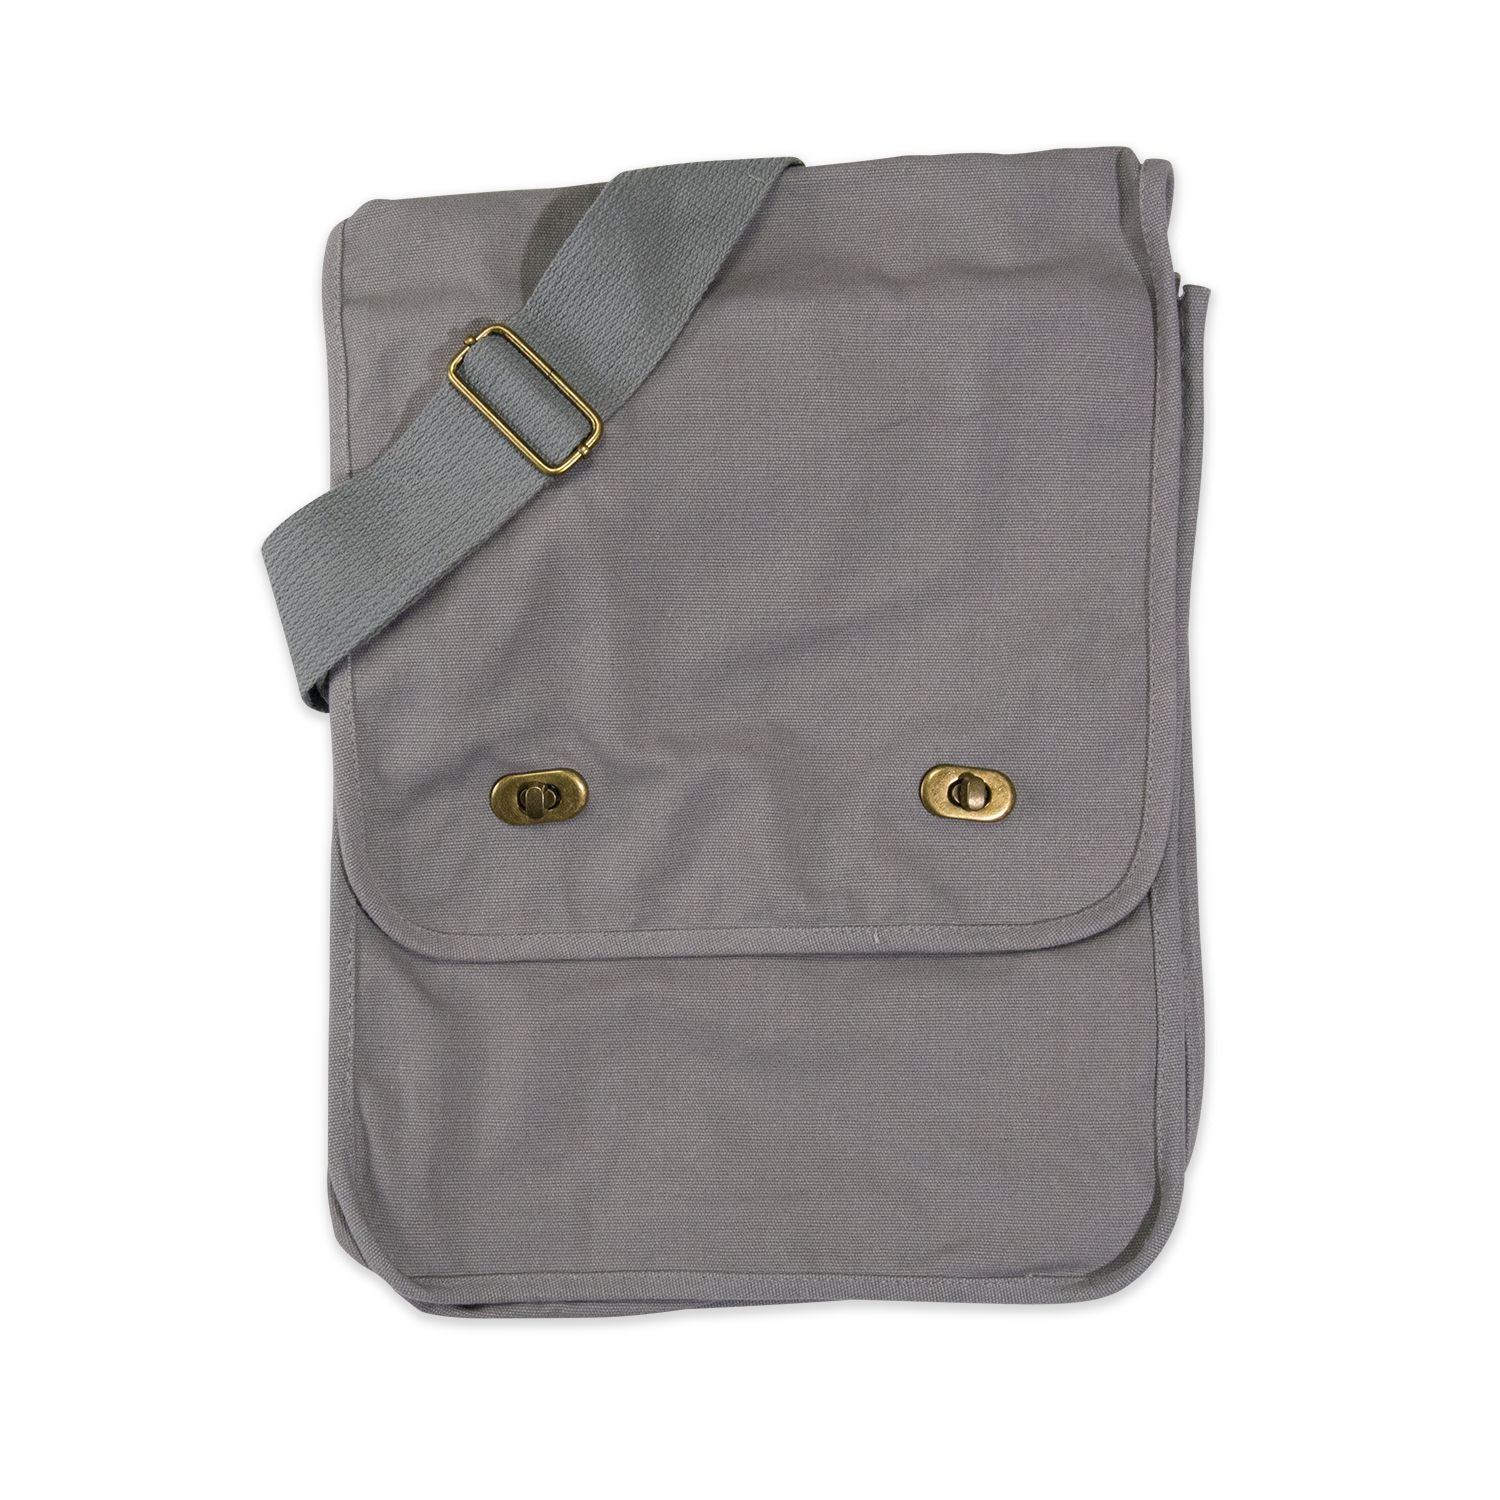 C343 - Canvas Field Bag